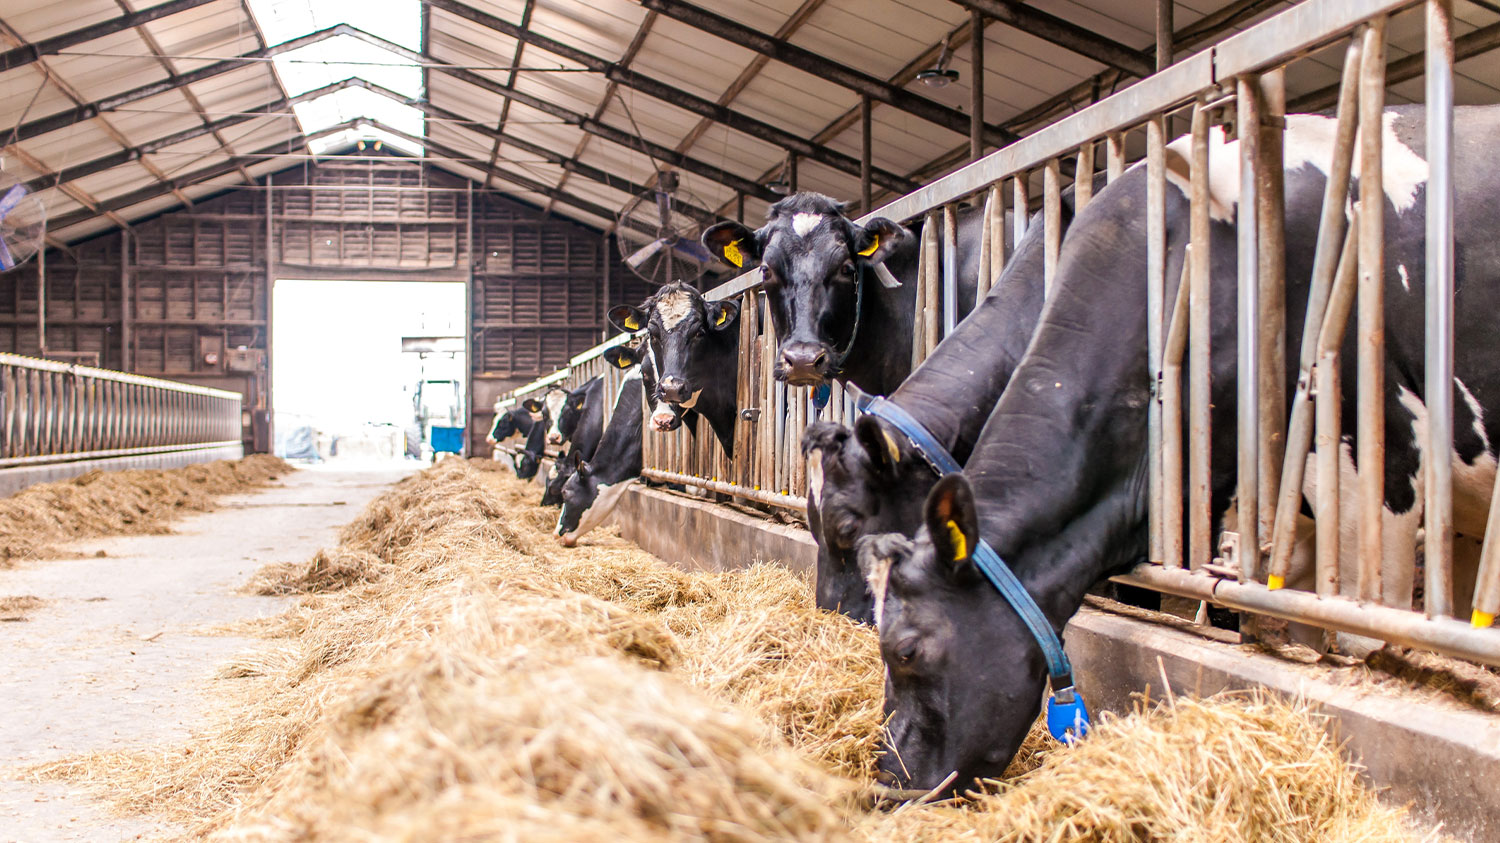 Cattle in barn eating hay